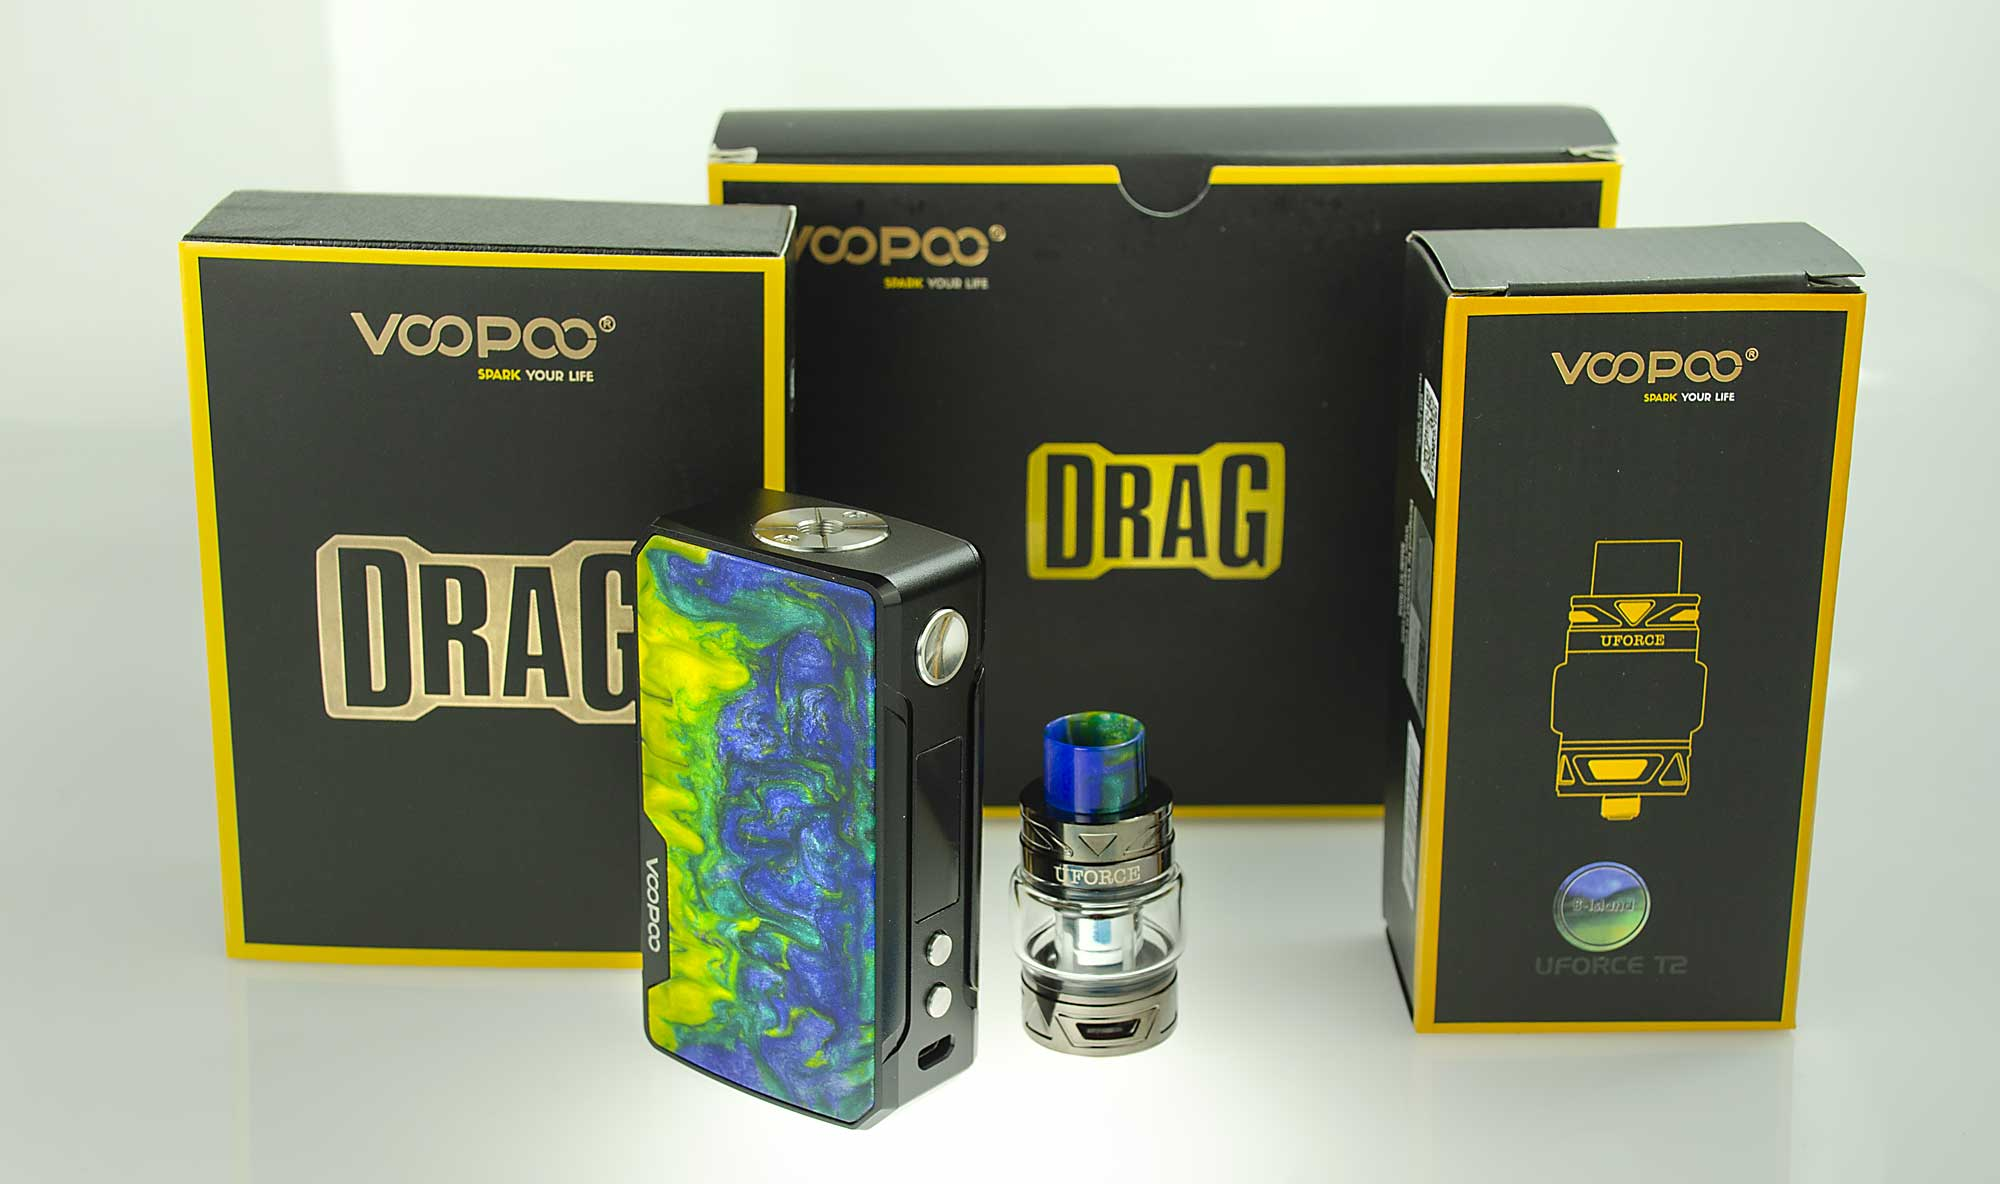 Voopoo Drag 2 177W Kit with Uforce T2 Tank: VapeLoft MD in Edgewater